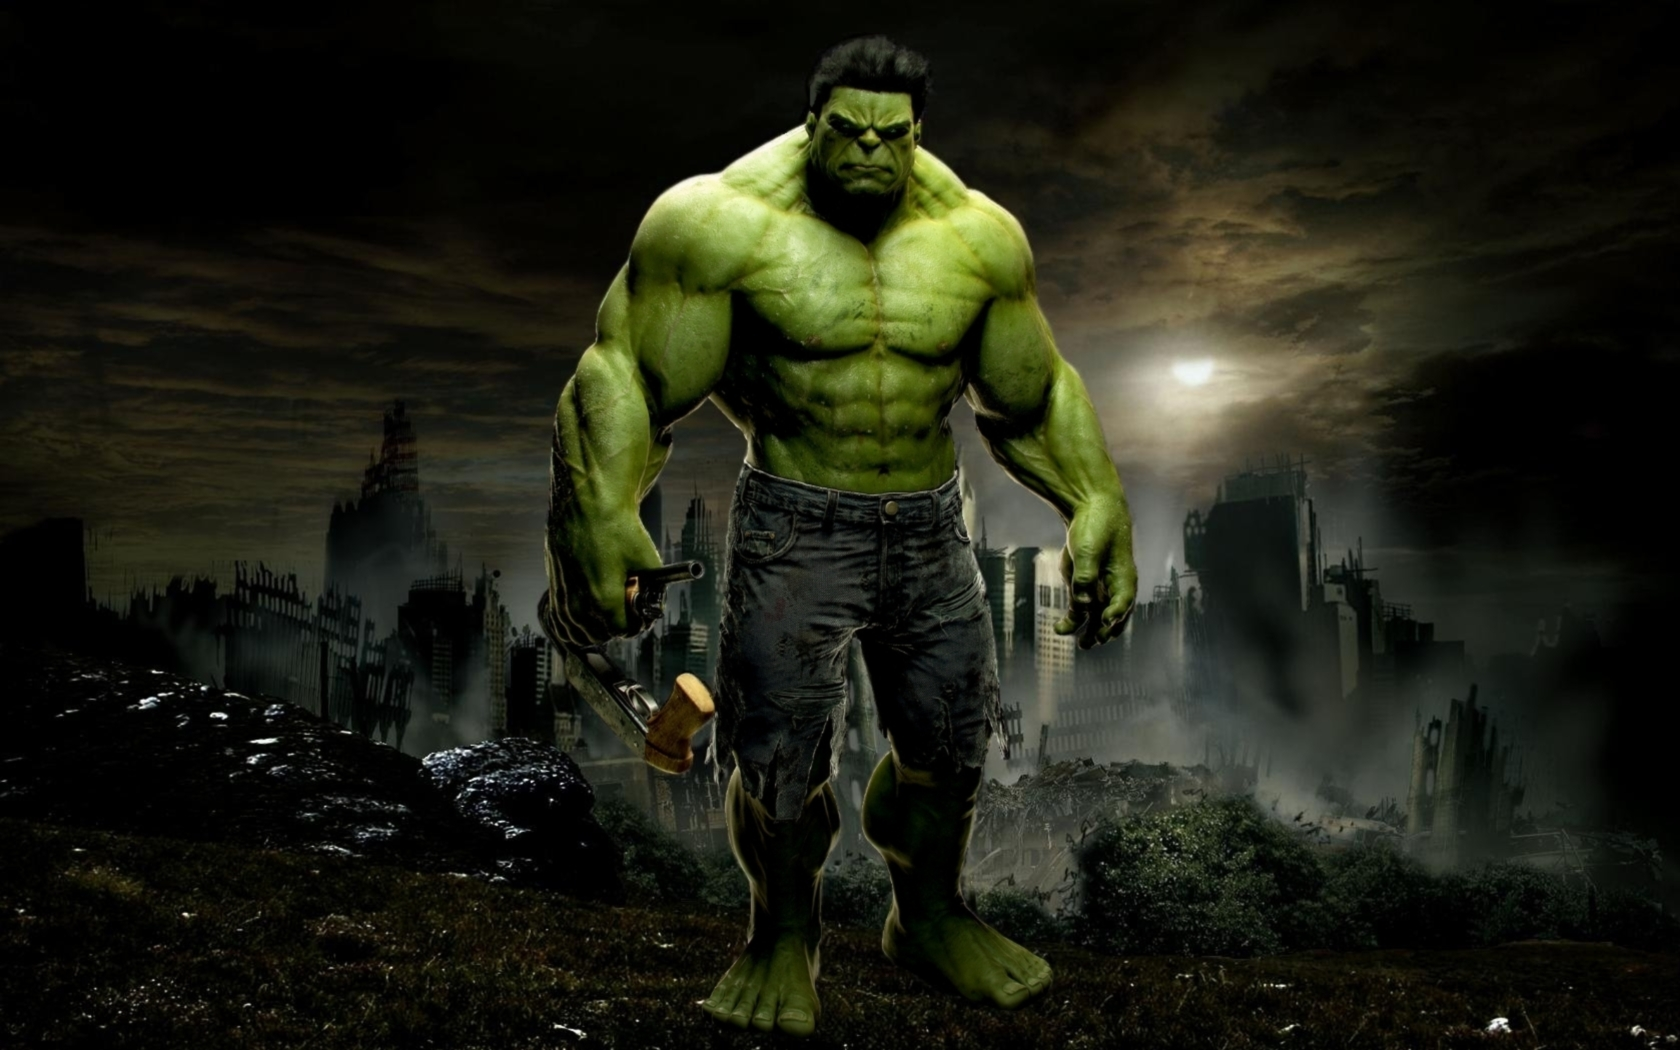 hulk wallpaper   Page 3 of 3   hdwallpaper20com 1680x1050